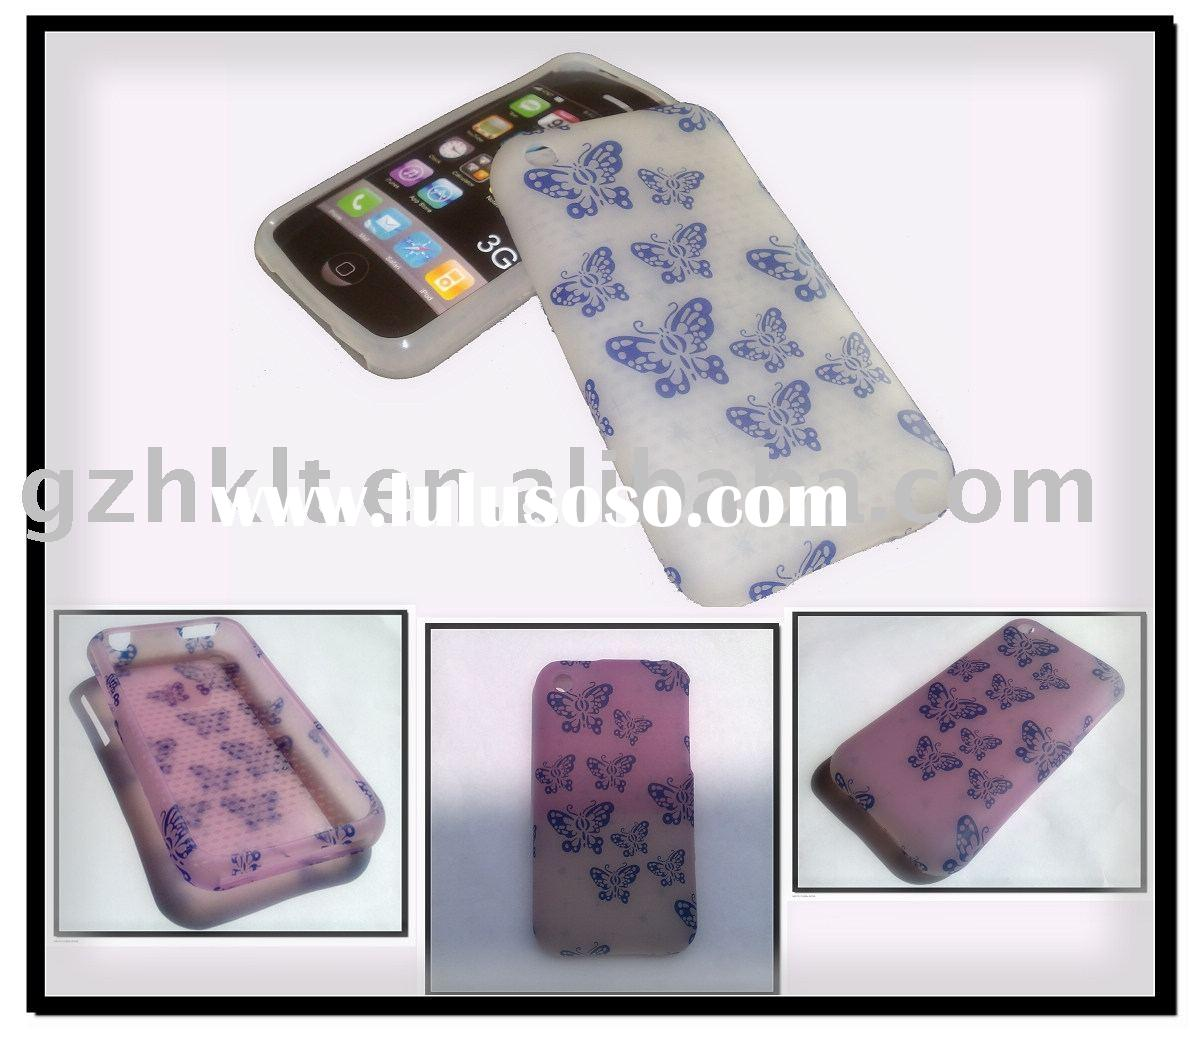 mobile phone case(Special TPU case for iphone 3G/3GS)Change in color under the sun!